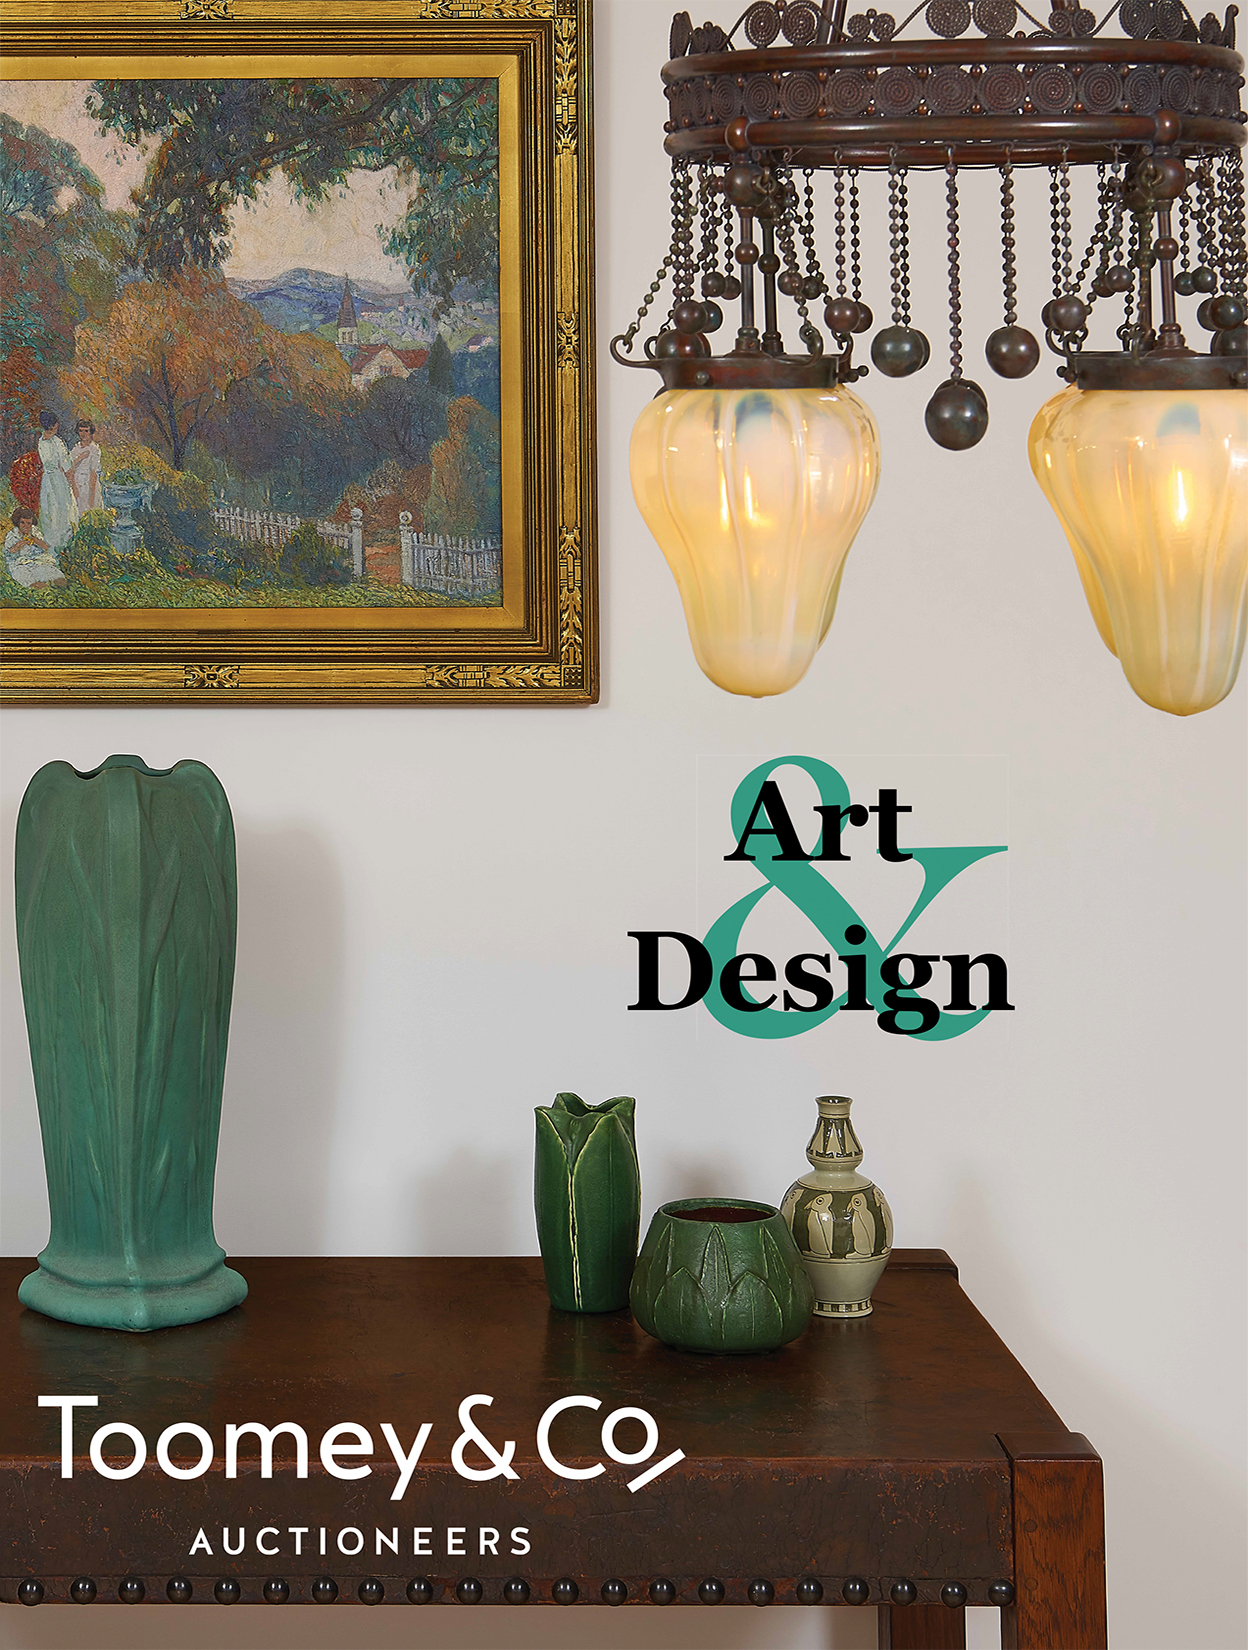 Sale 123: Art & Design, print catalog